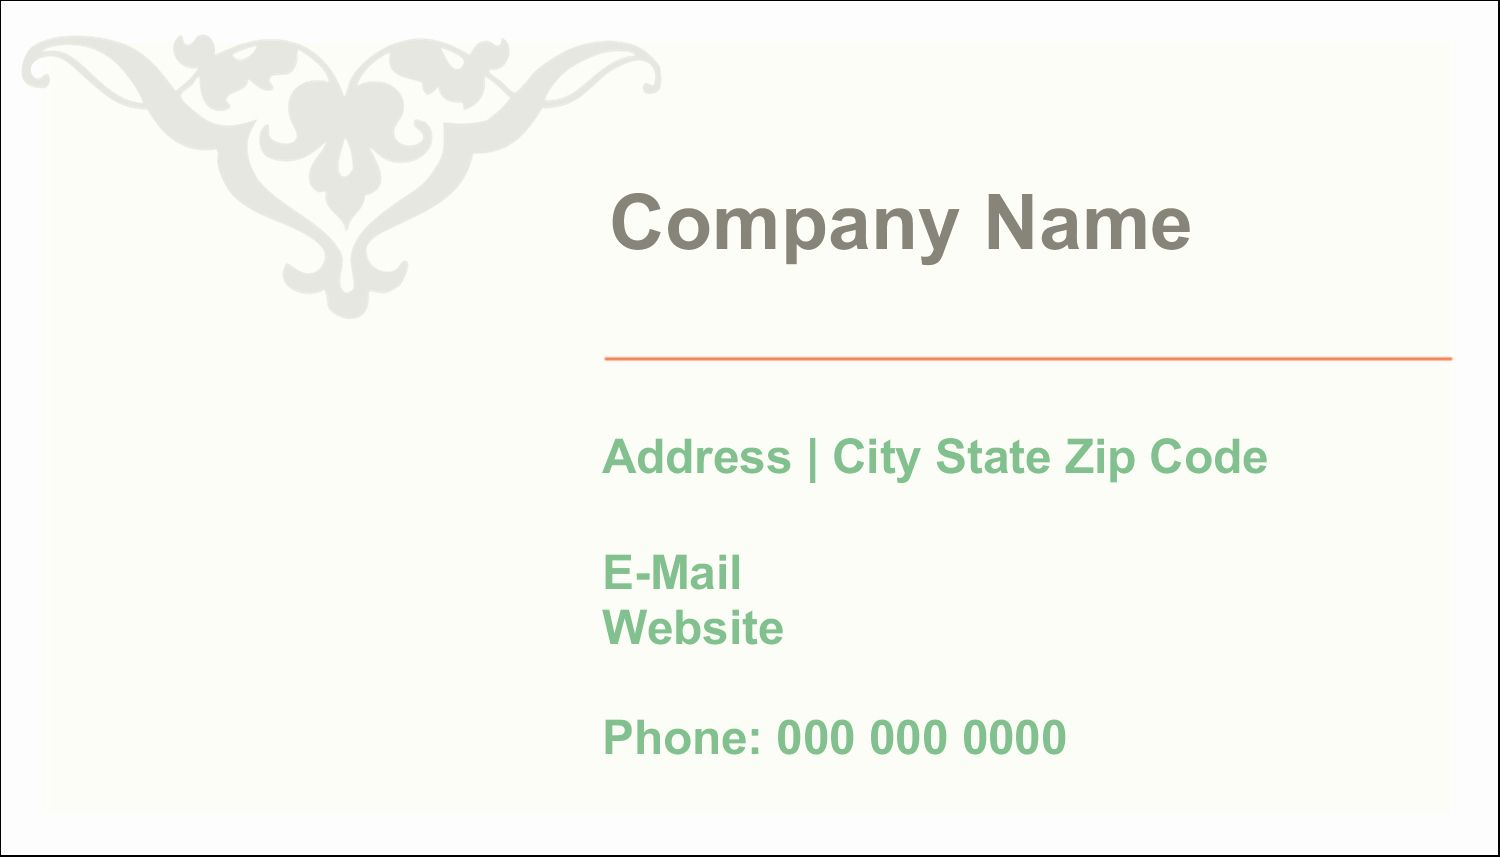 Avery 8875 Business Card Template Luxury Avery Clean Edge Rounded Corner Business Cards 2 Card Template Business Card Template Greeting Card Design